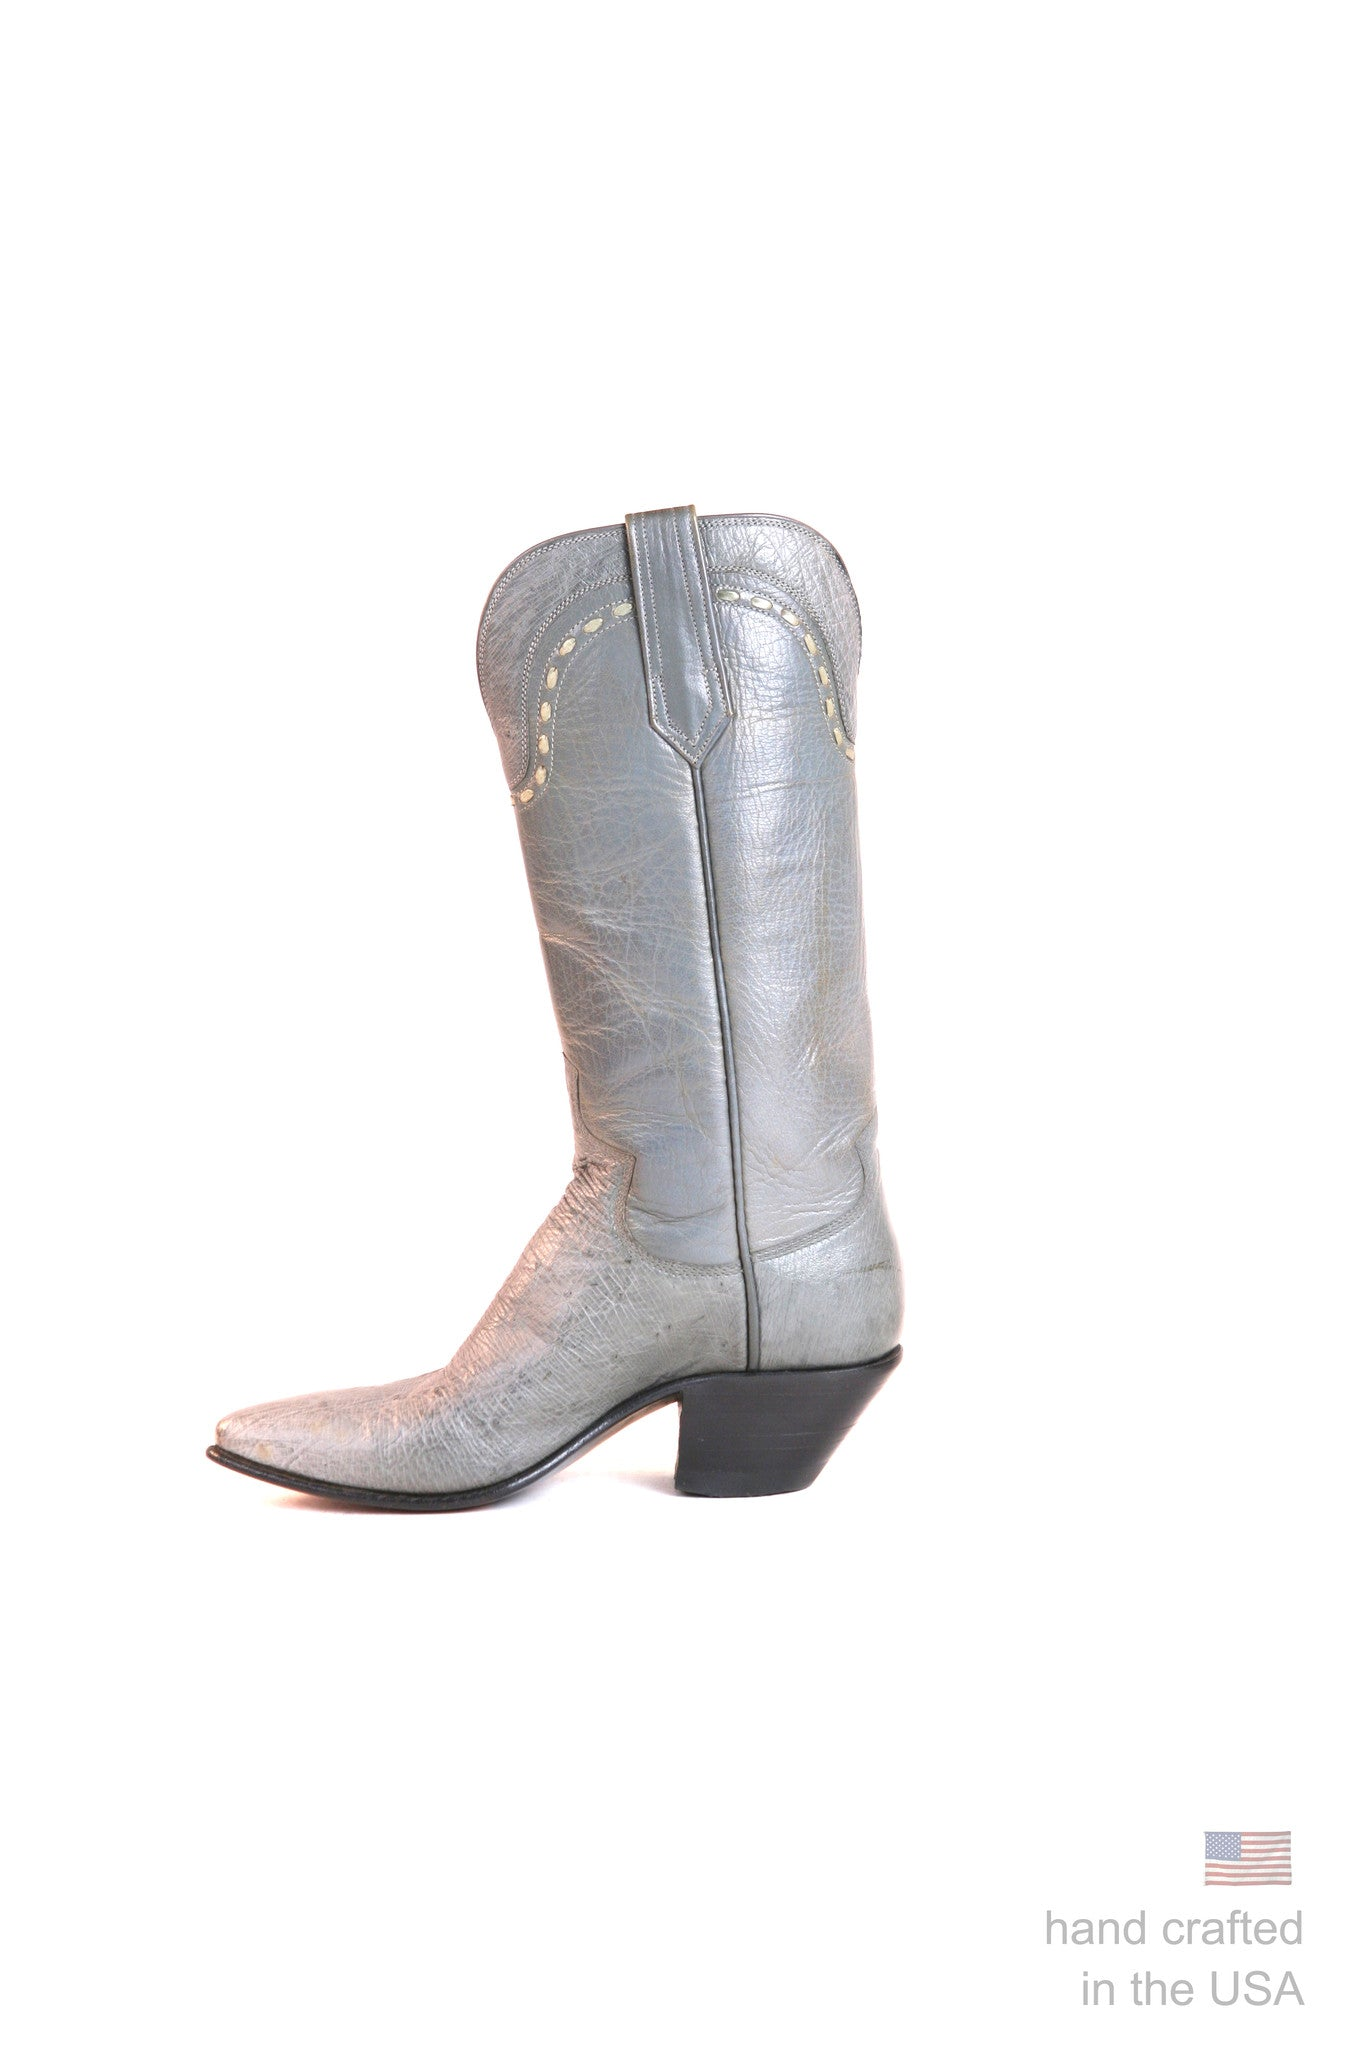 Singles: Boot 0026: Size 5B